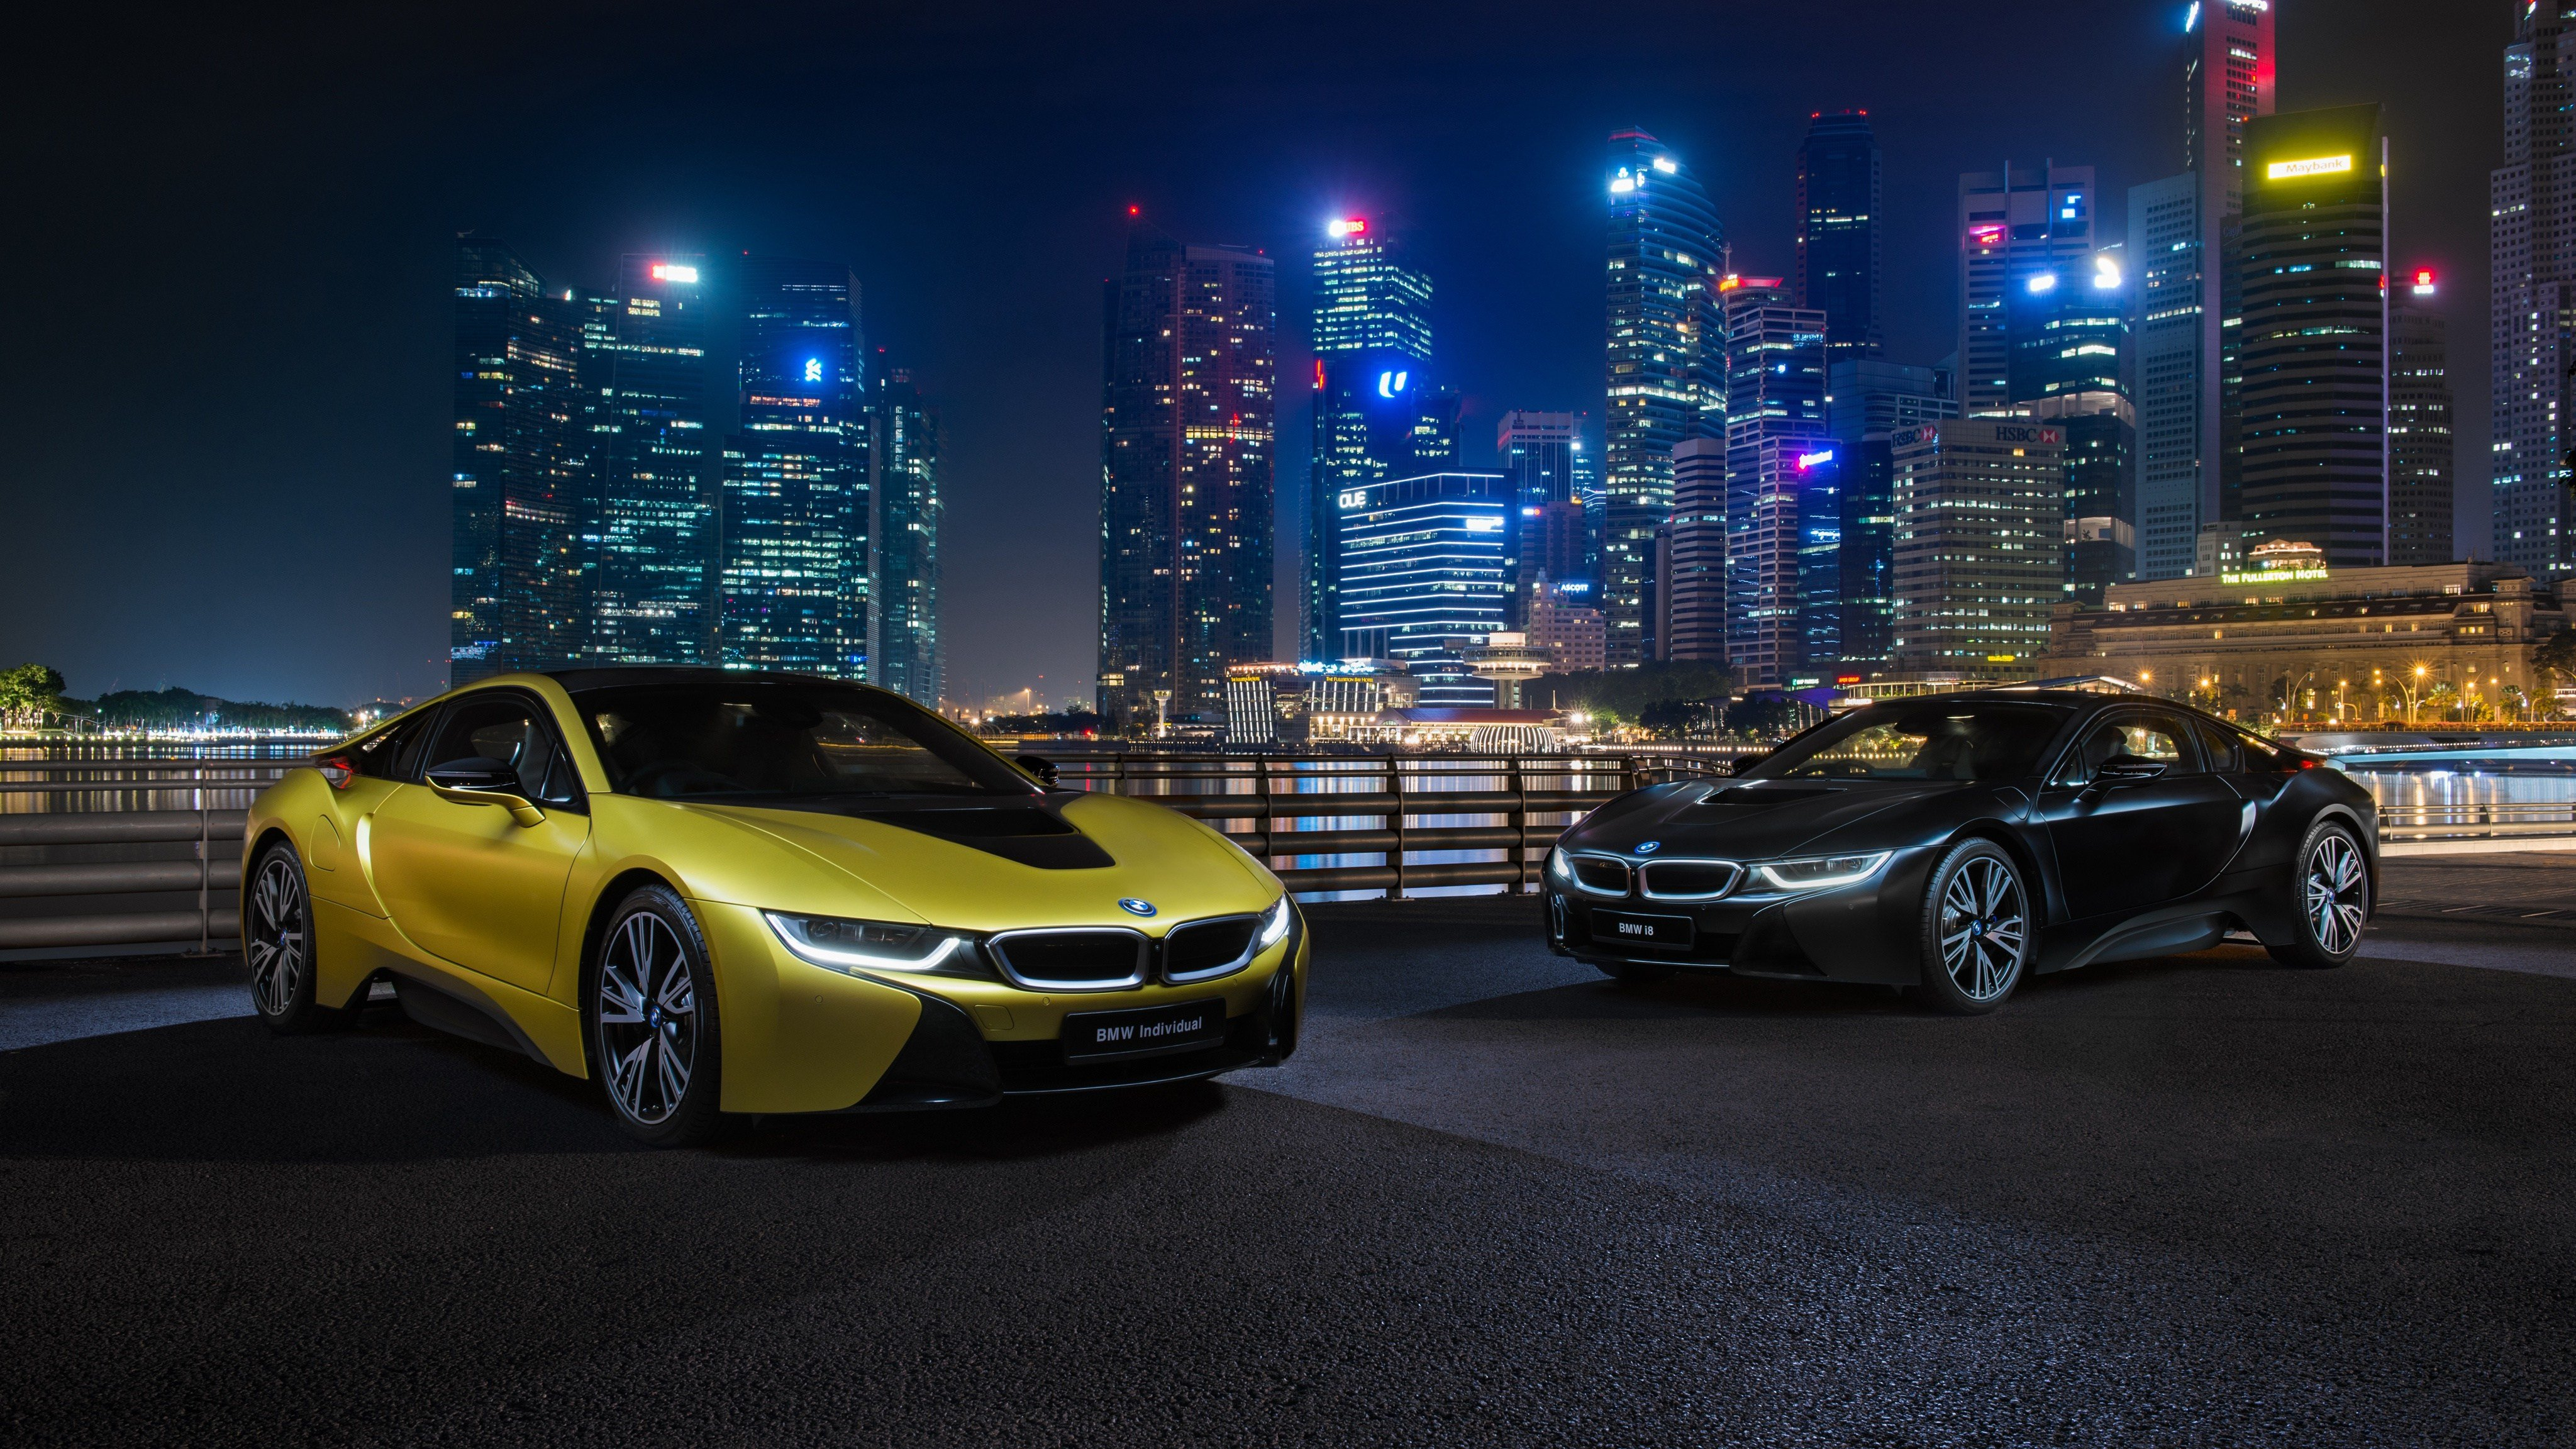 Latest Image Bmw I8 Frozen Yellow Edition Two Gold Color Auto Free Download